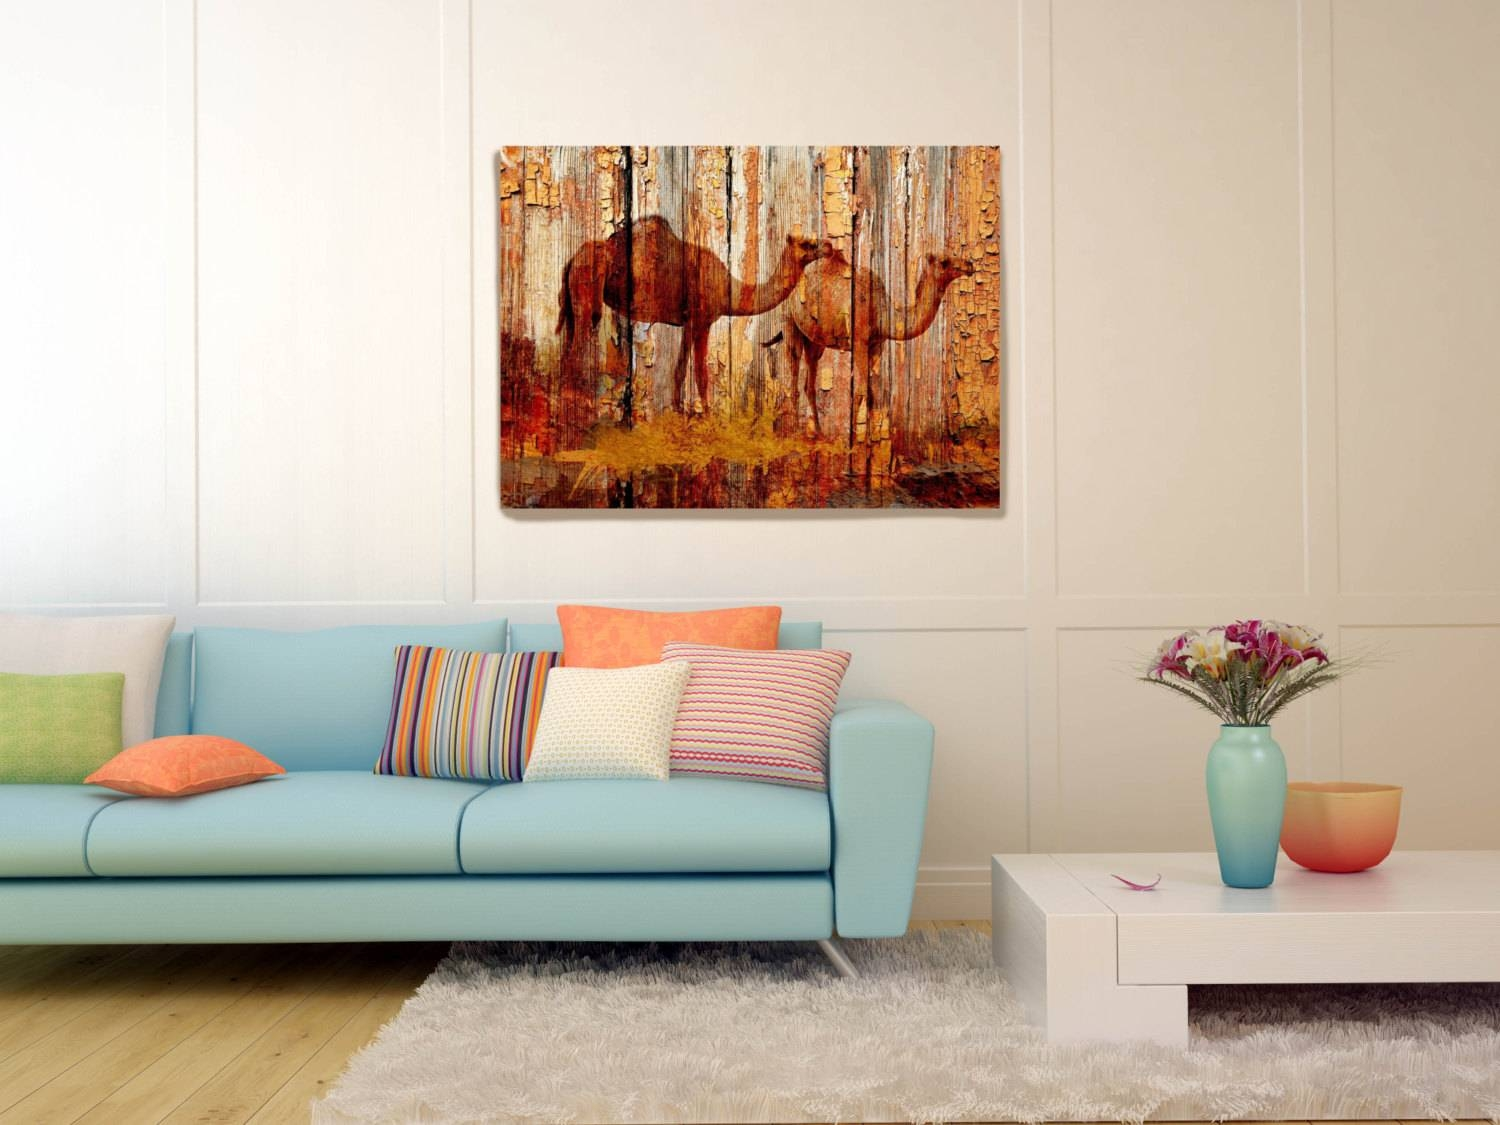 Camels On Wood Plank Canvas Wall Art Print Large Camel Canvas Pertaining To 2017 48X48 Canvas Wall Art (View 11 of 20)